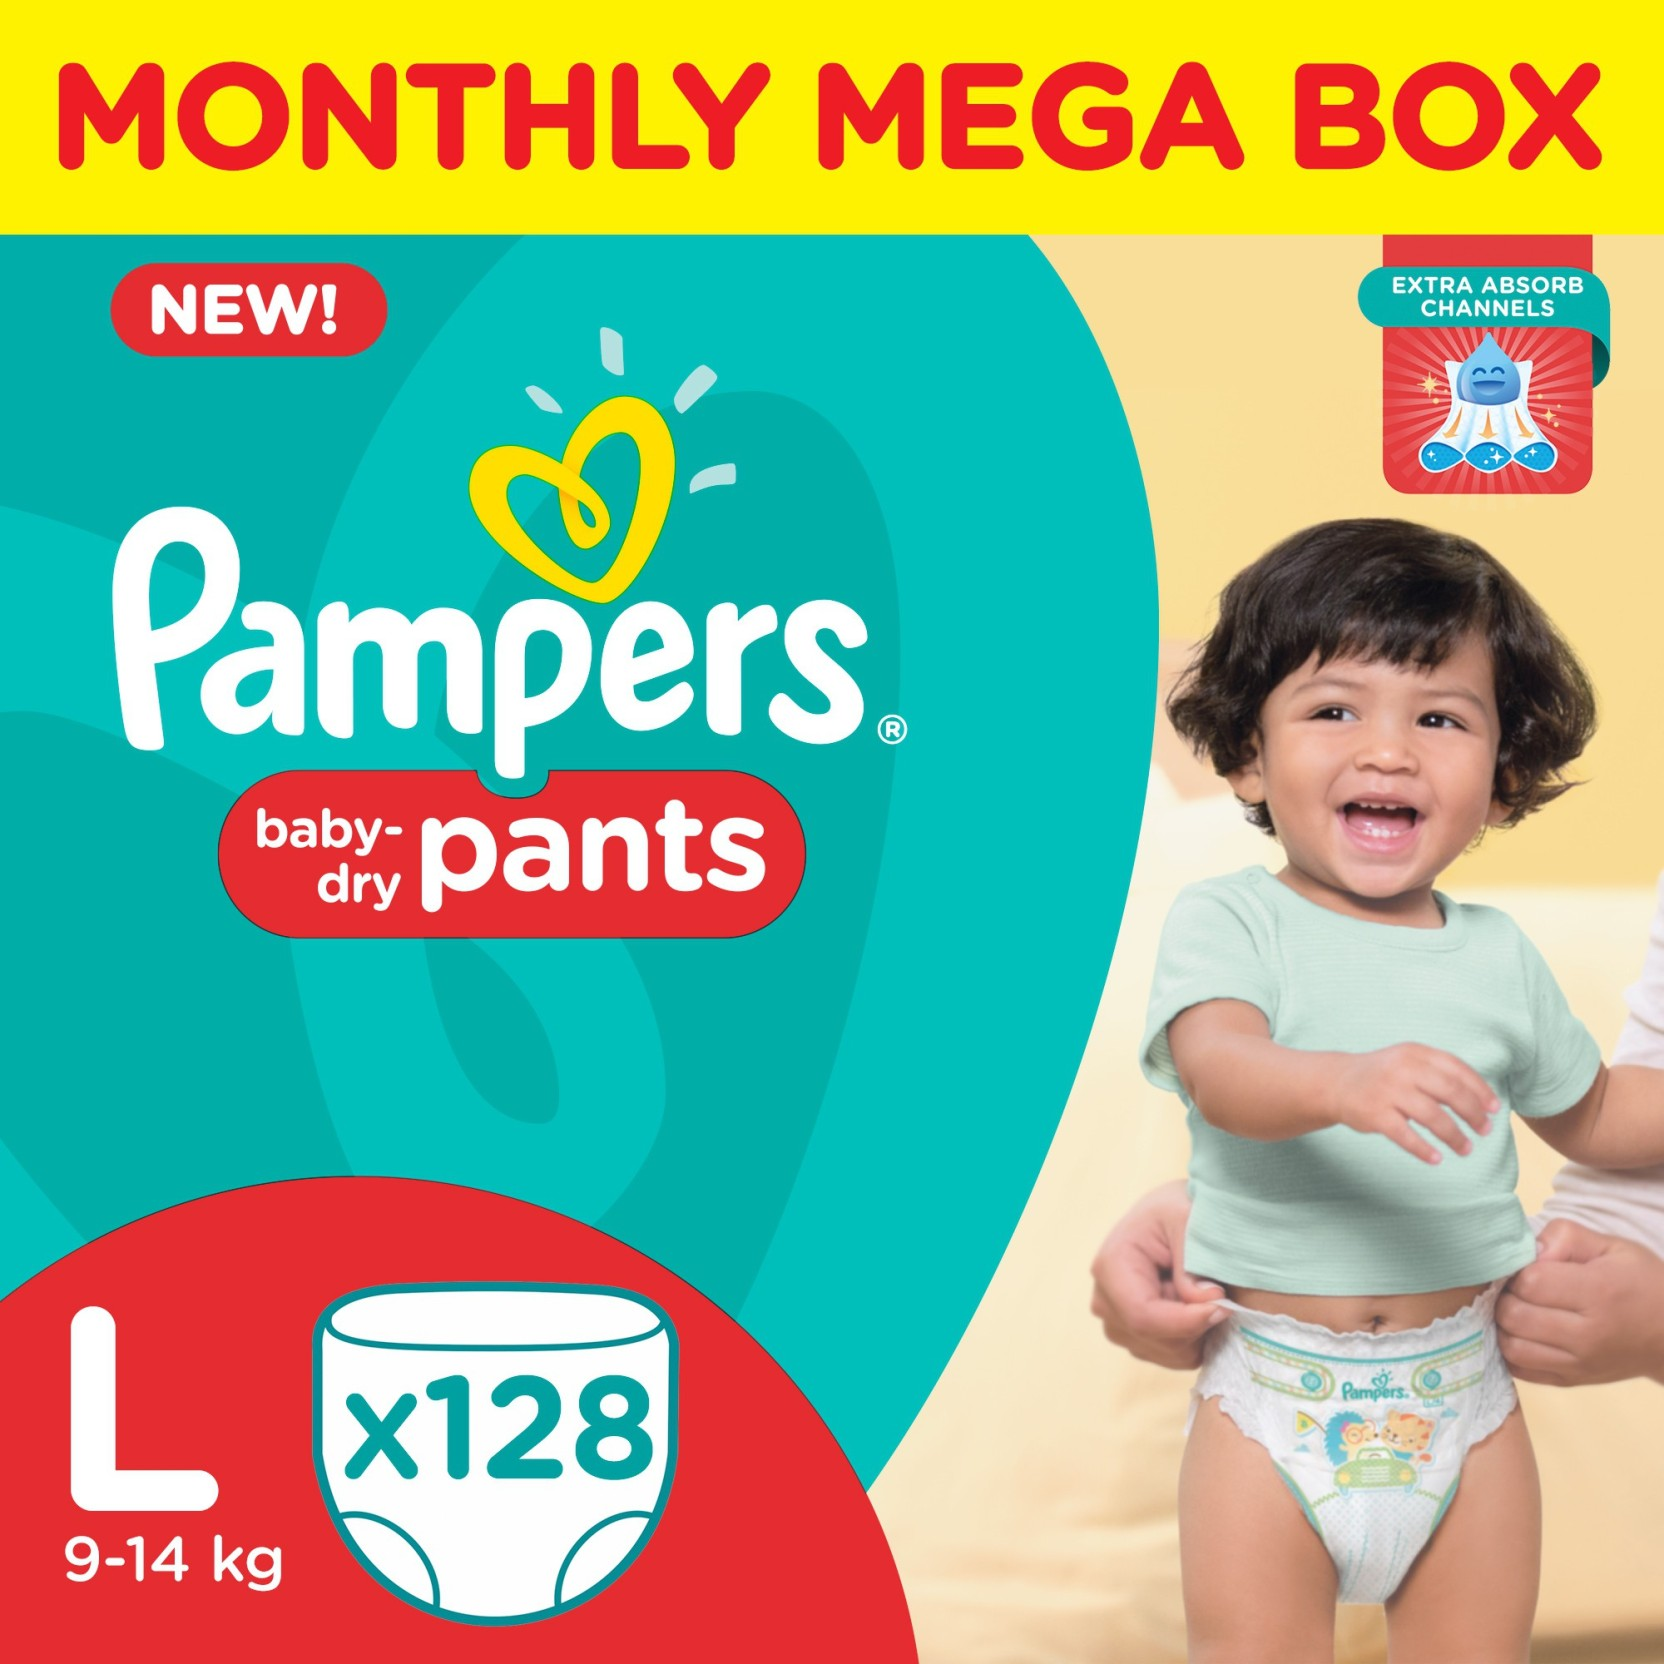 Pampers Pants Diapers Monthly Mega Box - L - Buy 128 ...